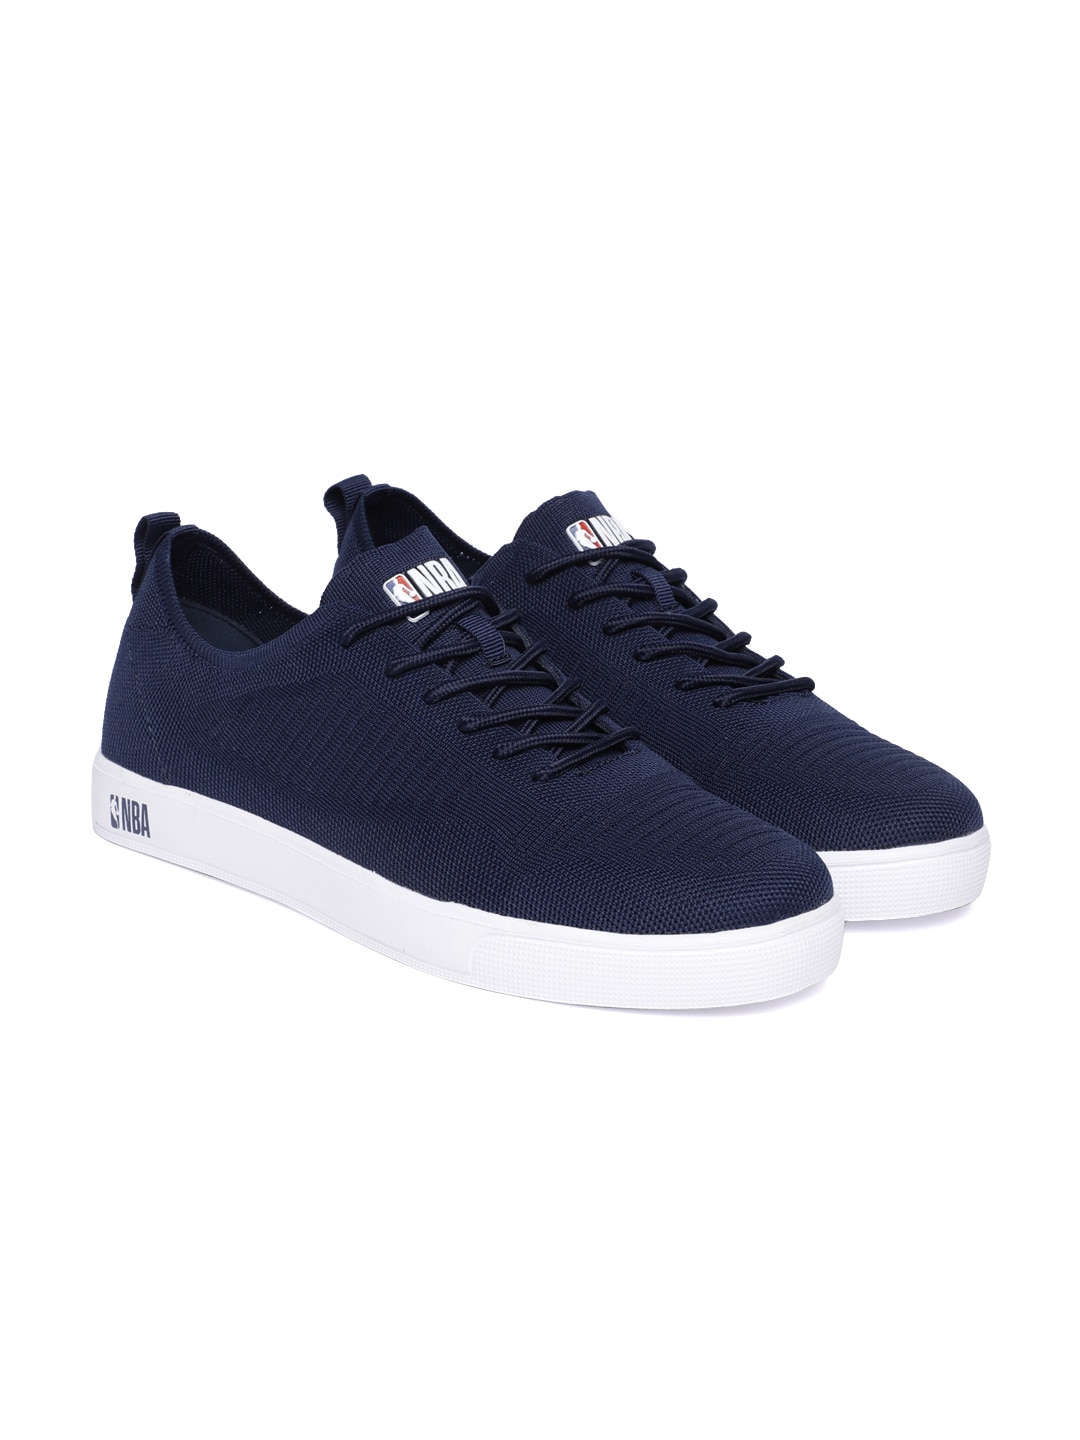 d8e7ff924d Shoes - Buy Shoes for Men